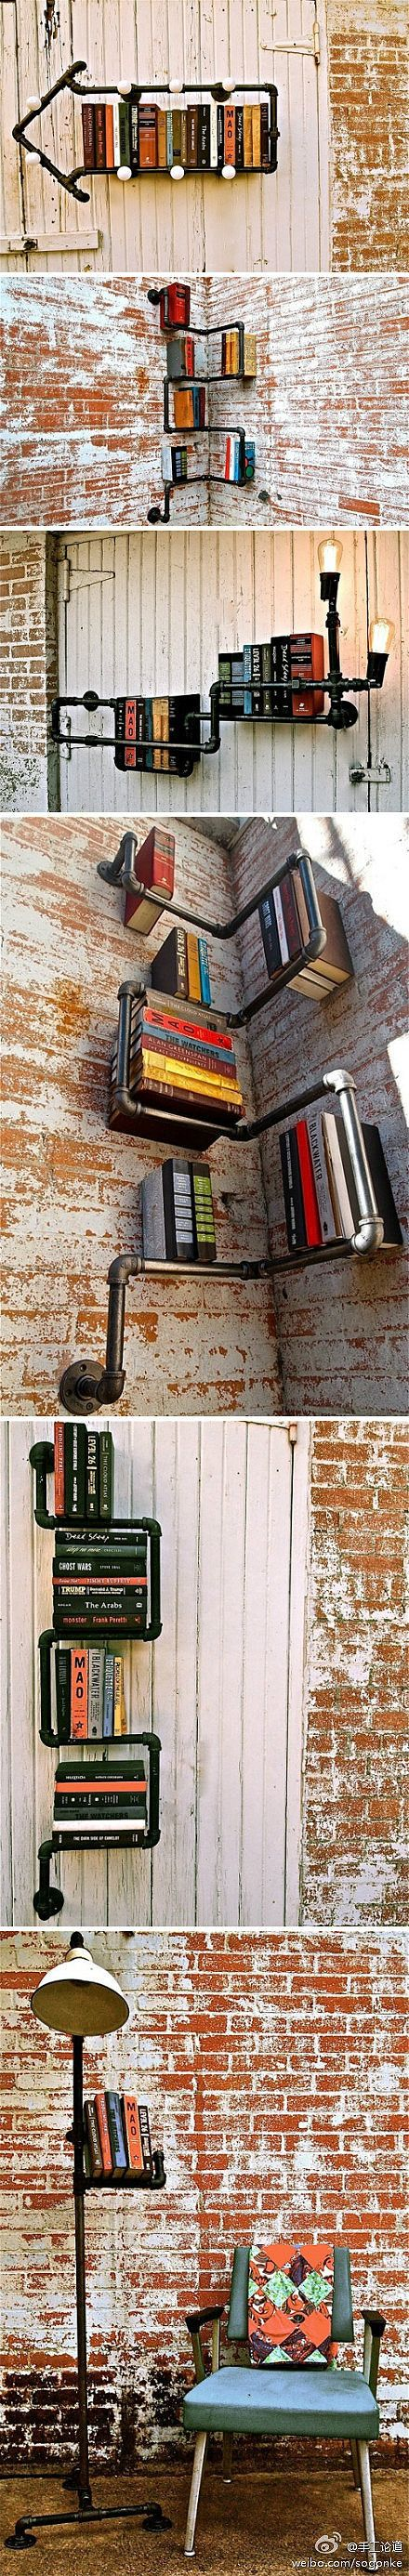 If I ever find myself needing shelfs for so few books, this is it! So awsome!